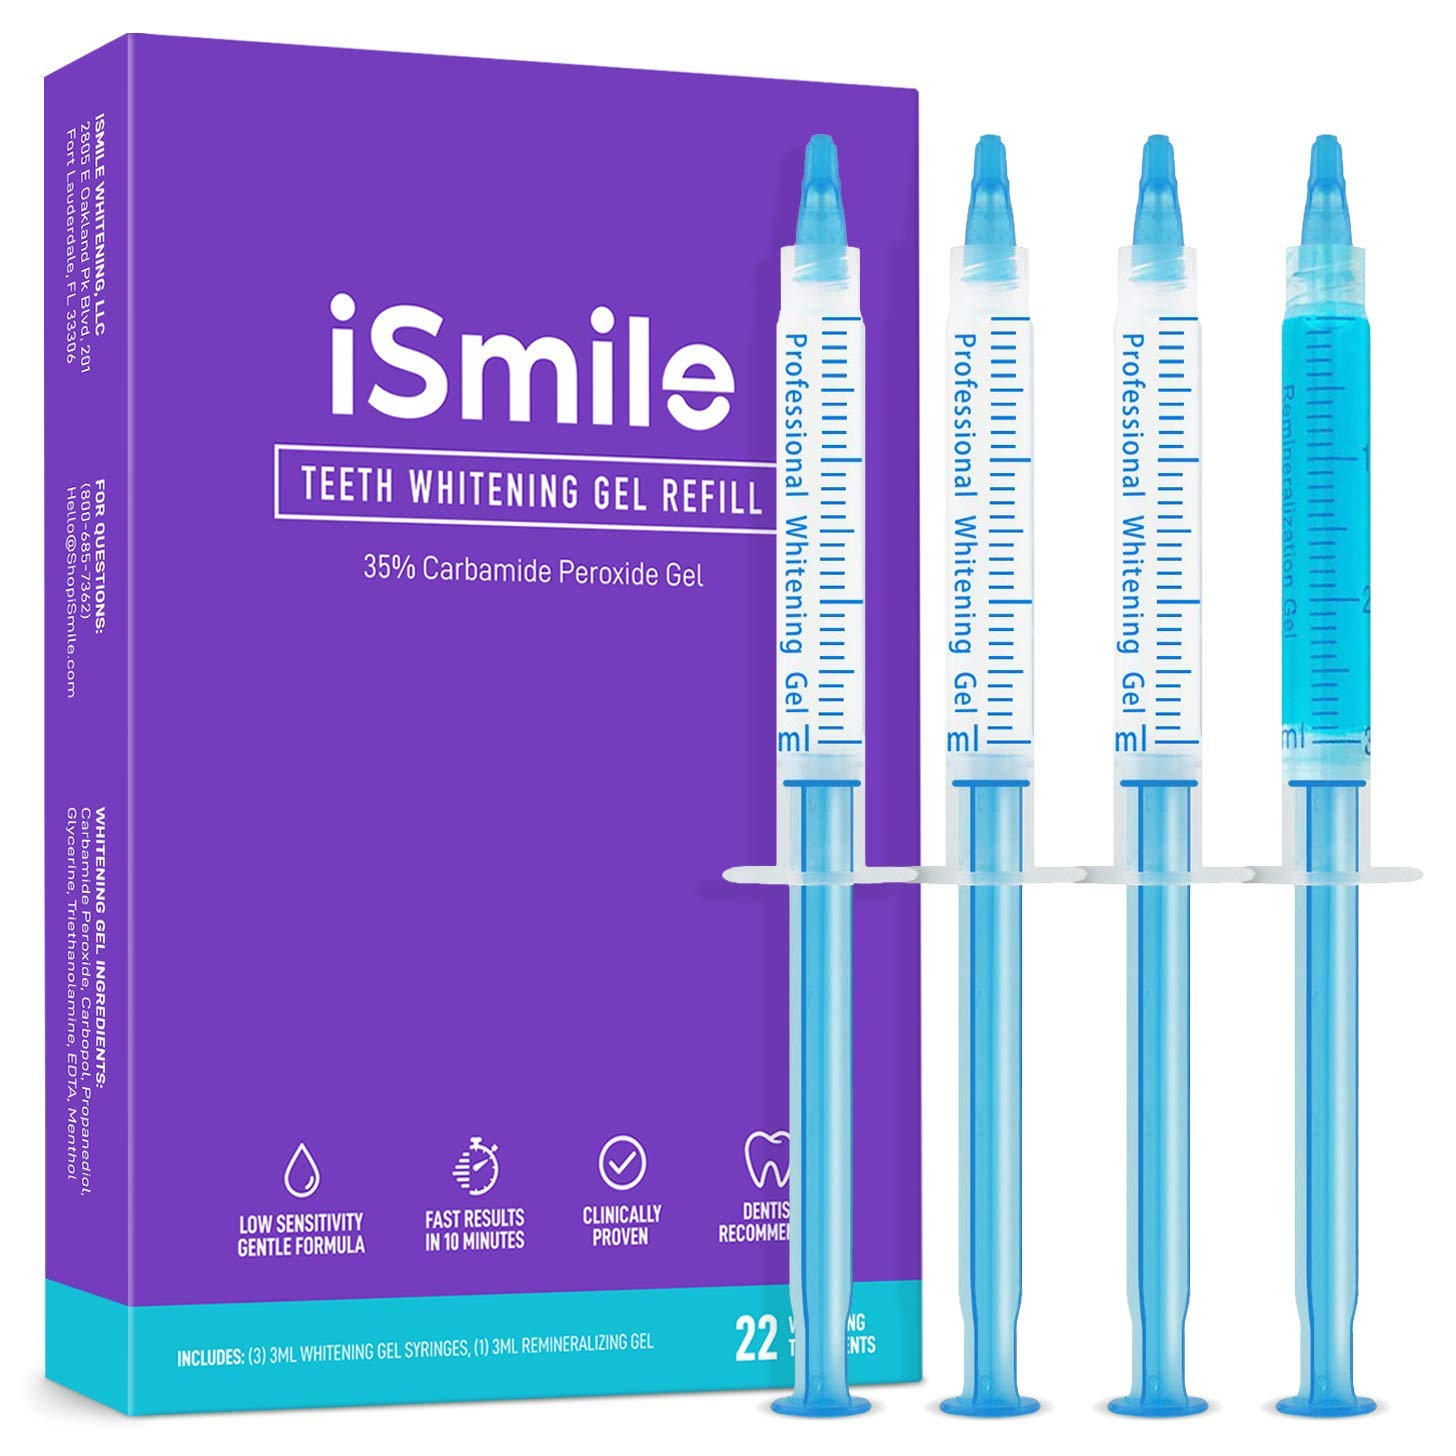 iSmile Teeth Whitening Gel Syringe Refill Pack - (3) 3ml Whitening Gel Syringes, (1) Remineralization Gel Syringe, No Sensitivity, Premium Quality, Use with LED Light and Trays